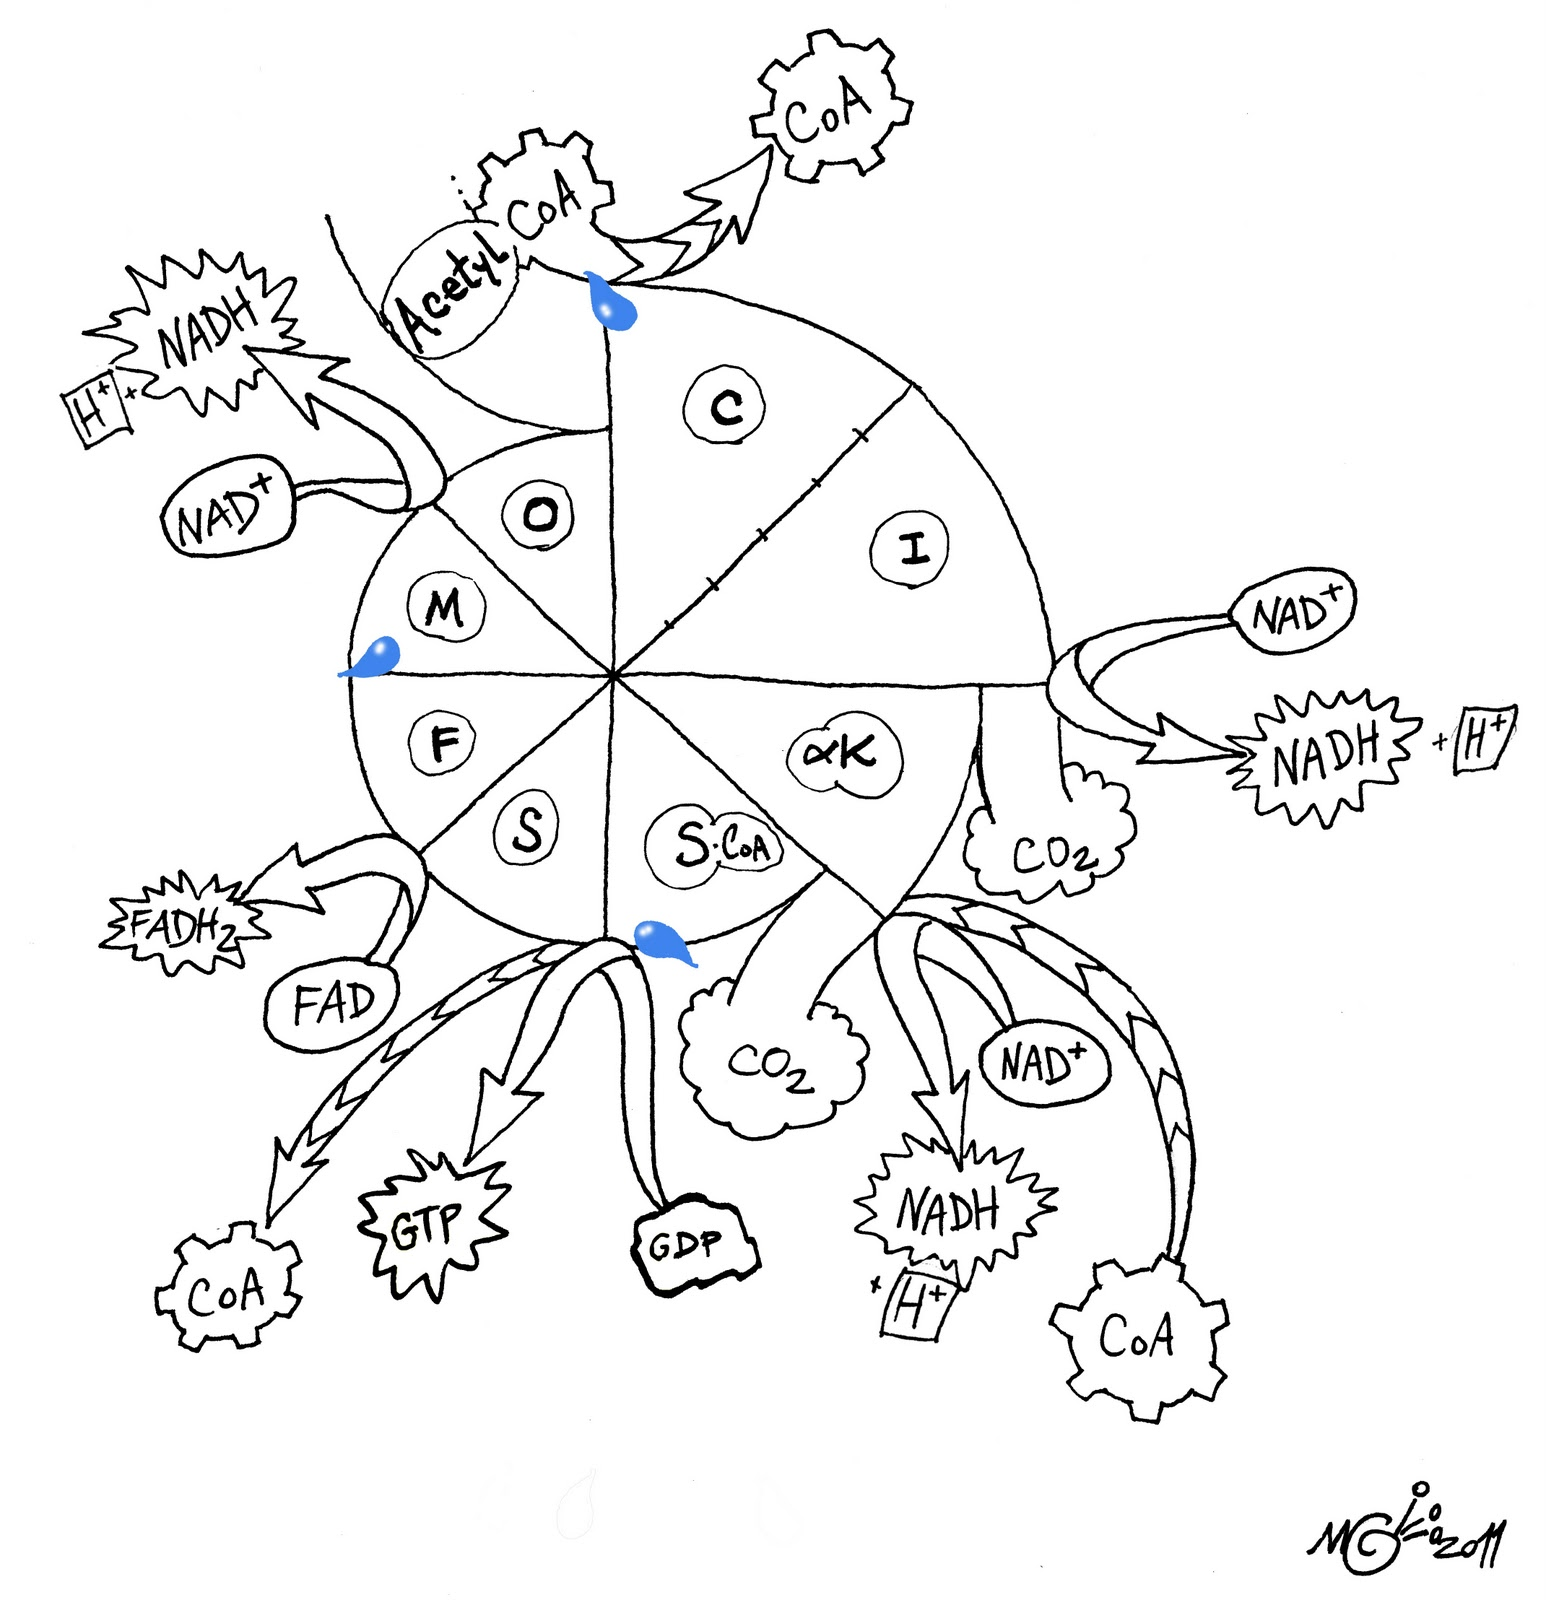 Immune system coloring page | Biology notes, Biology, Anatomy ... | 1600x1546